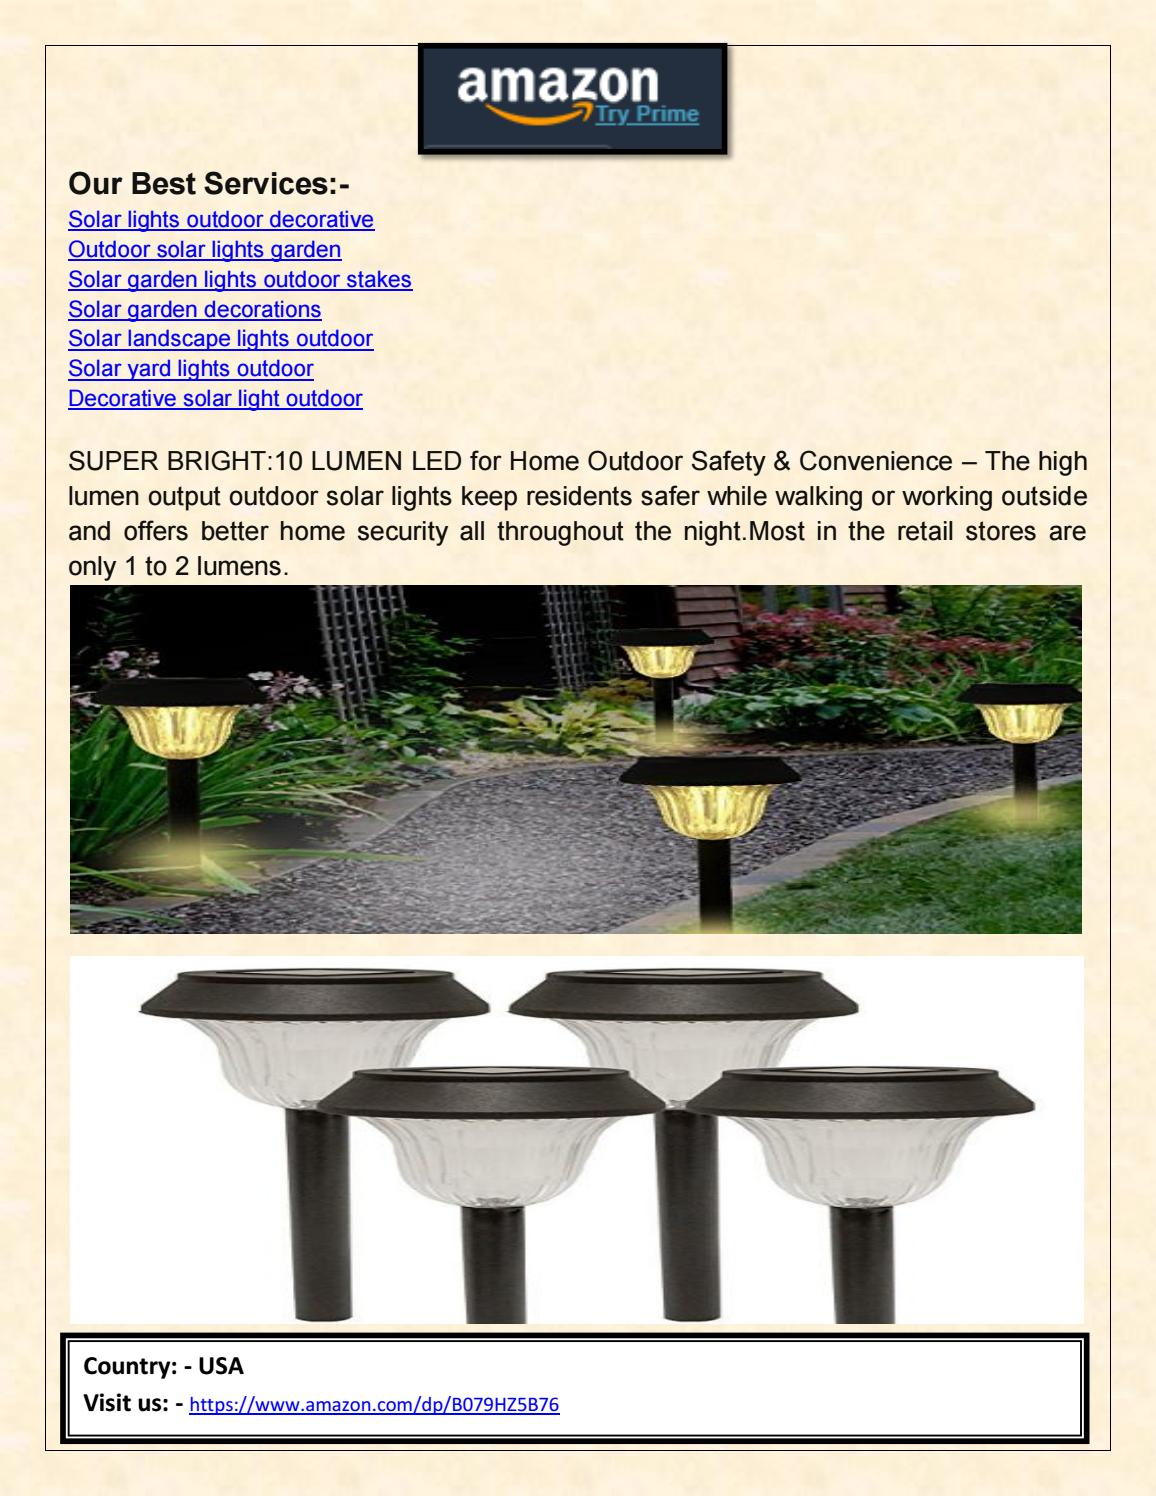 Sogrand Solar Lights Outdoor Pathway Decorative Garden Stake Light Upgraded Warm White Led By Federy Shory Issuu